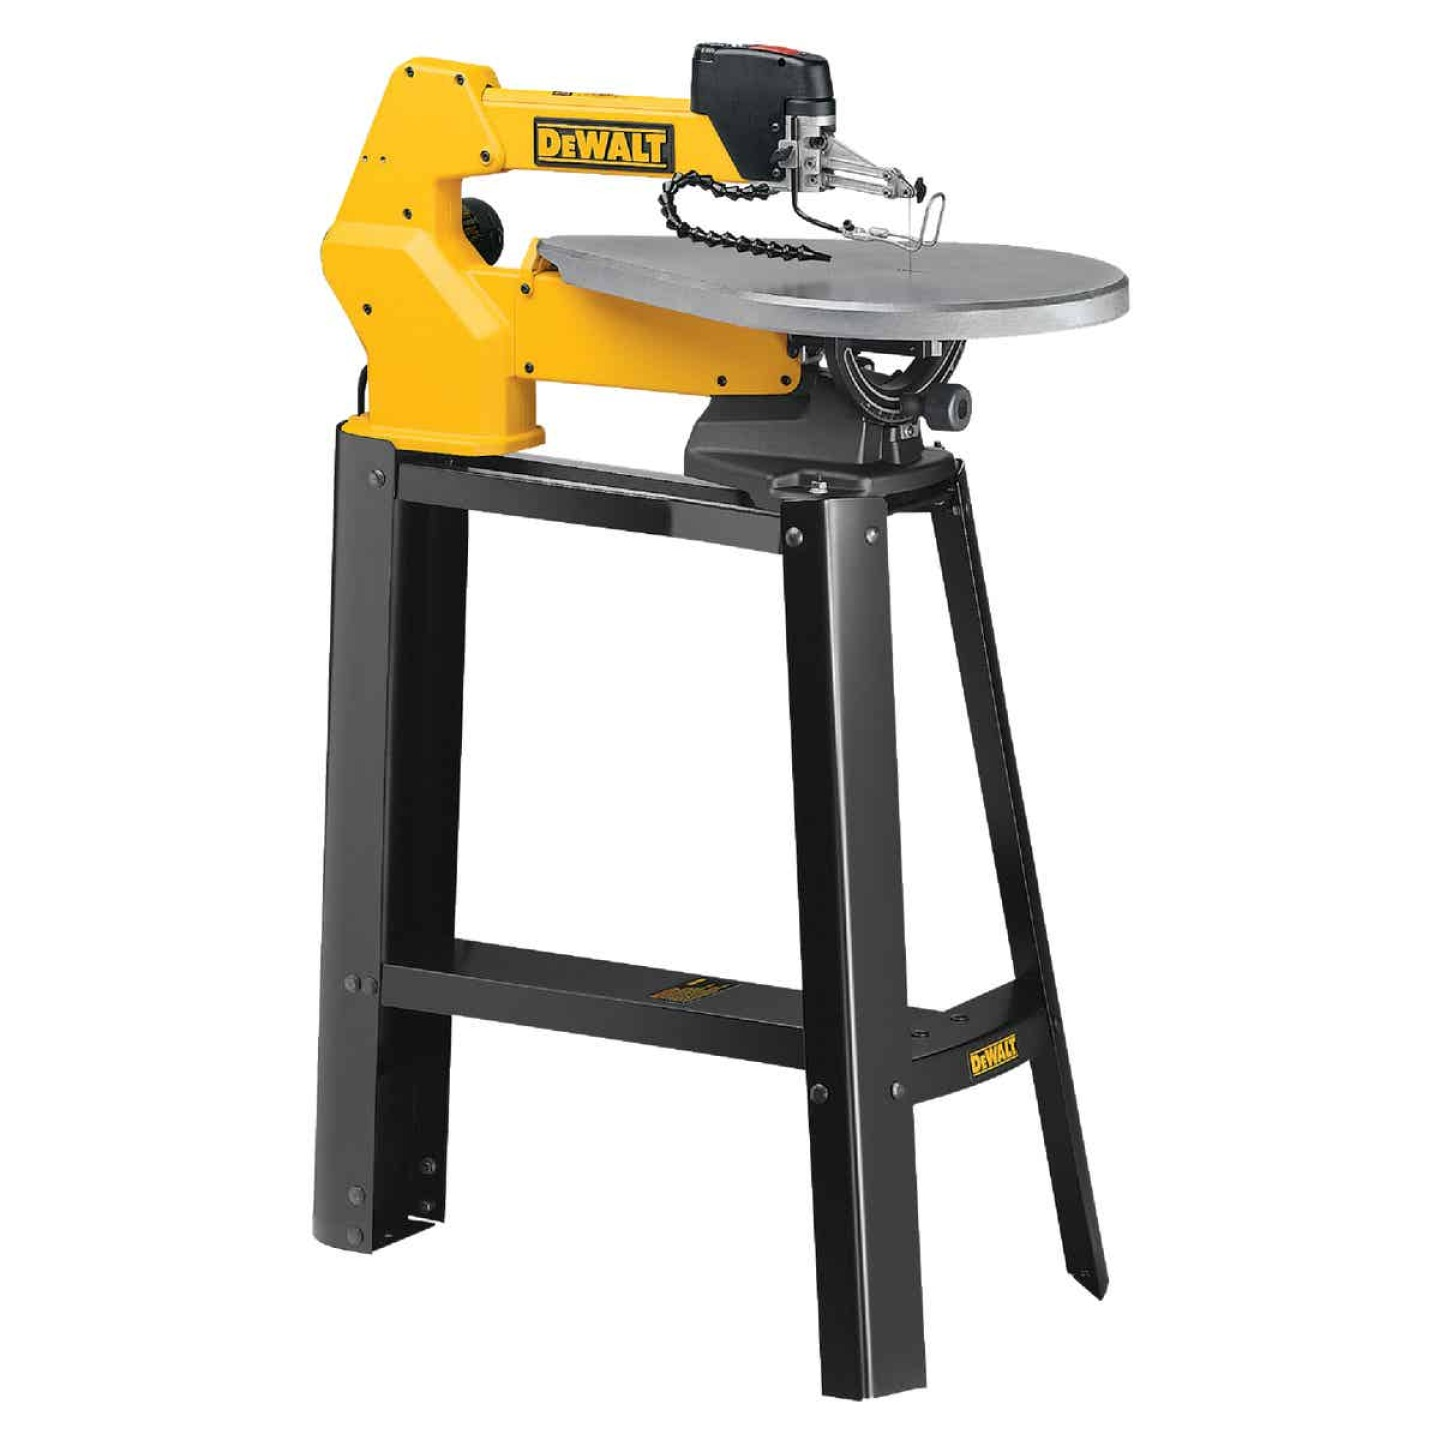 DeWalt 20 In. Scroll Saw Image 5